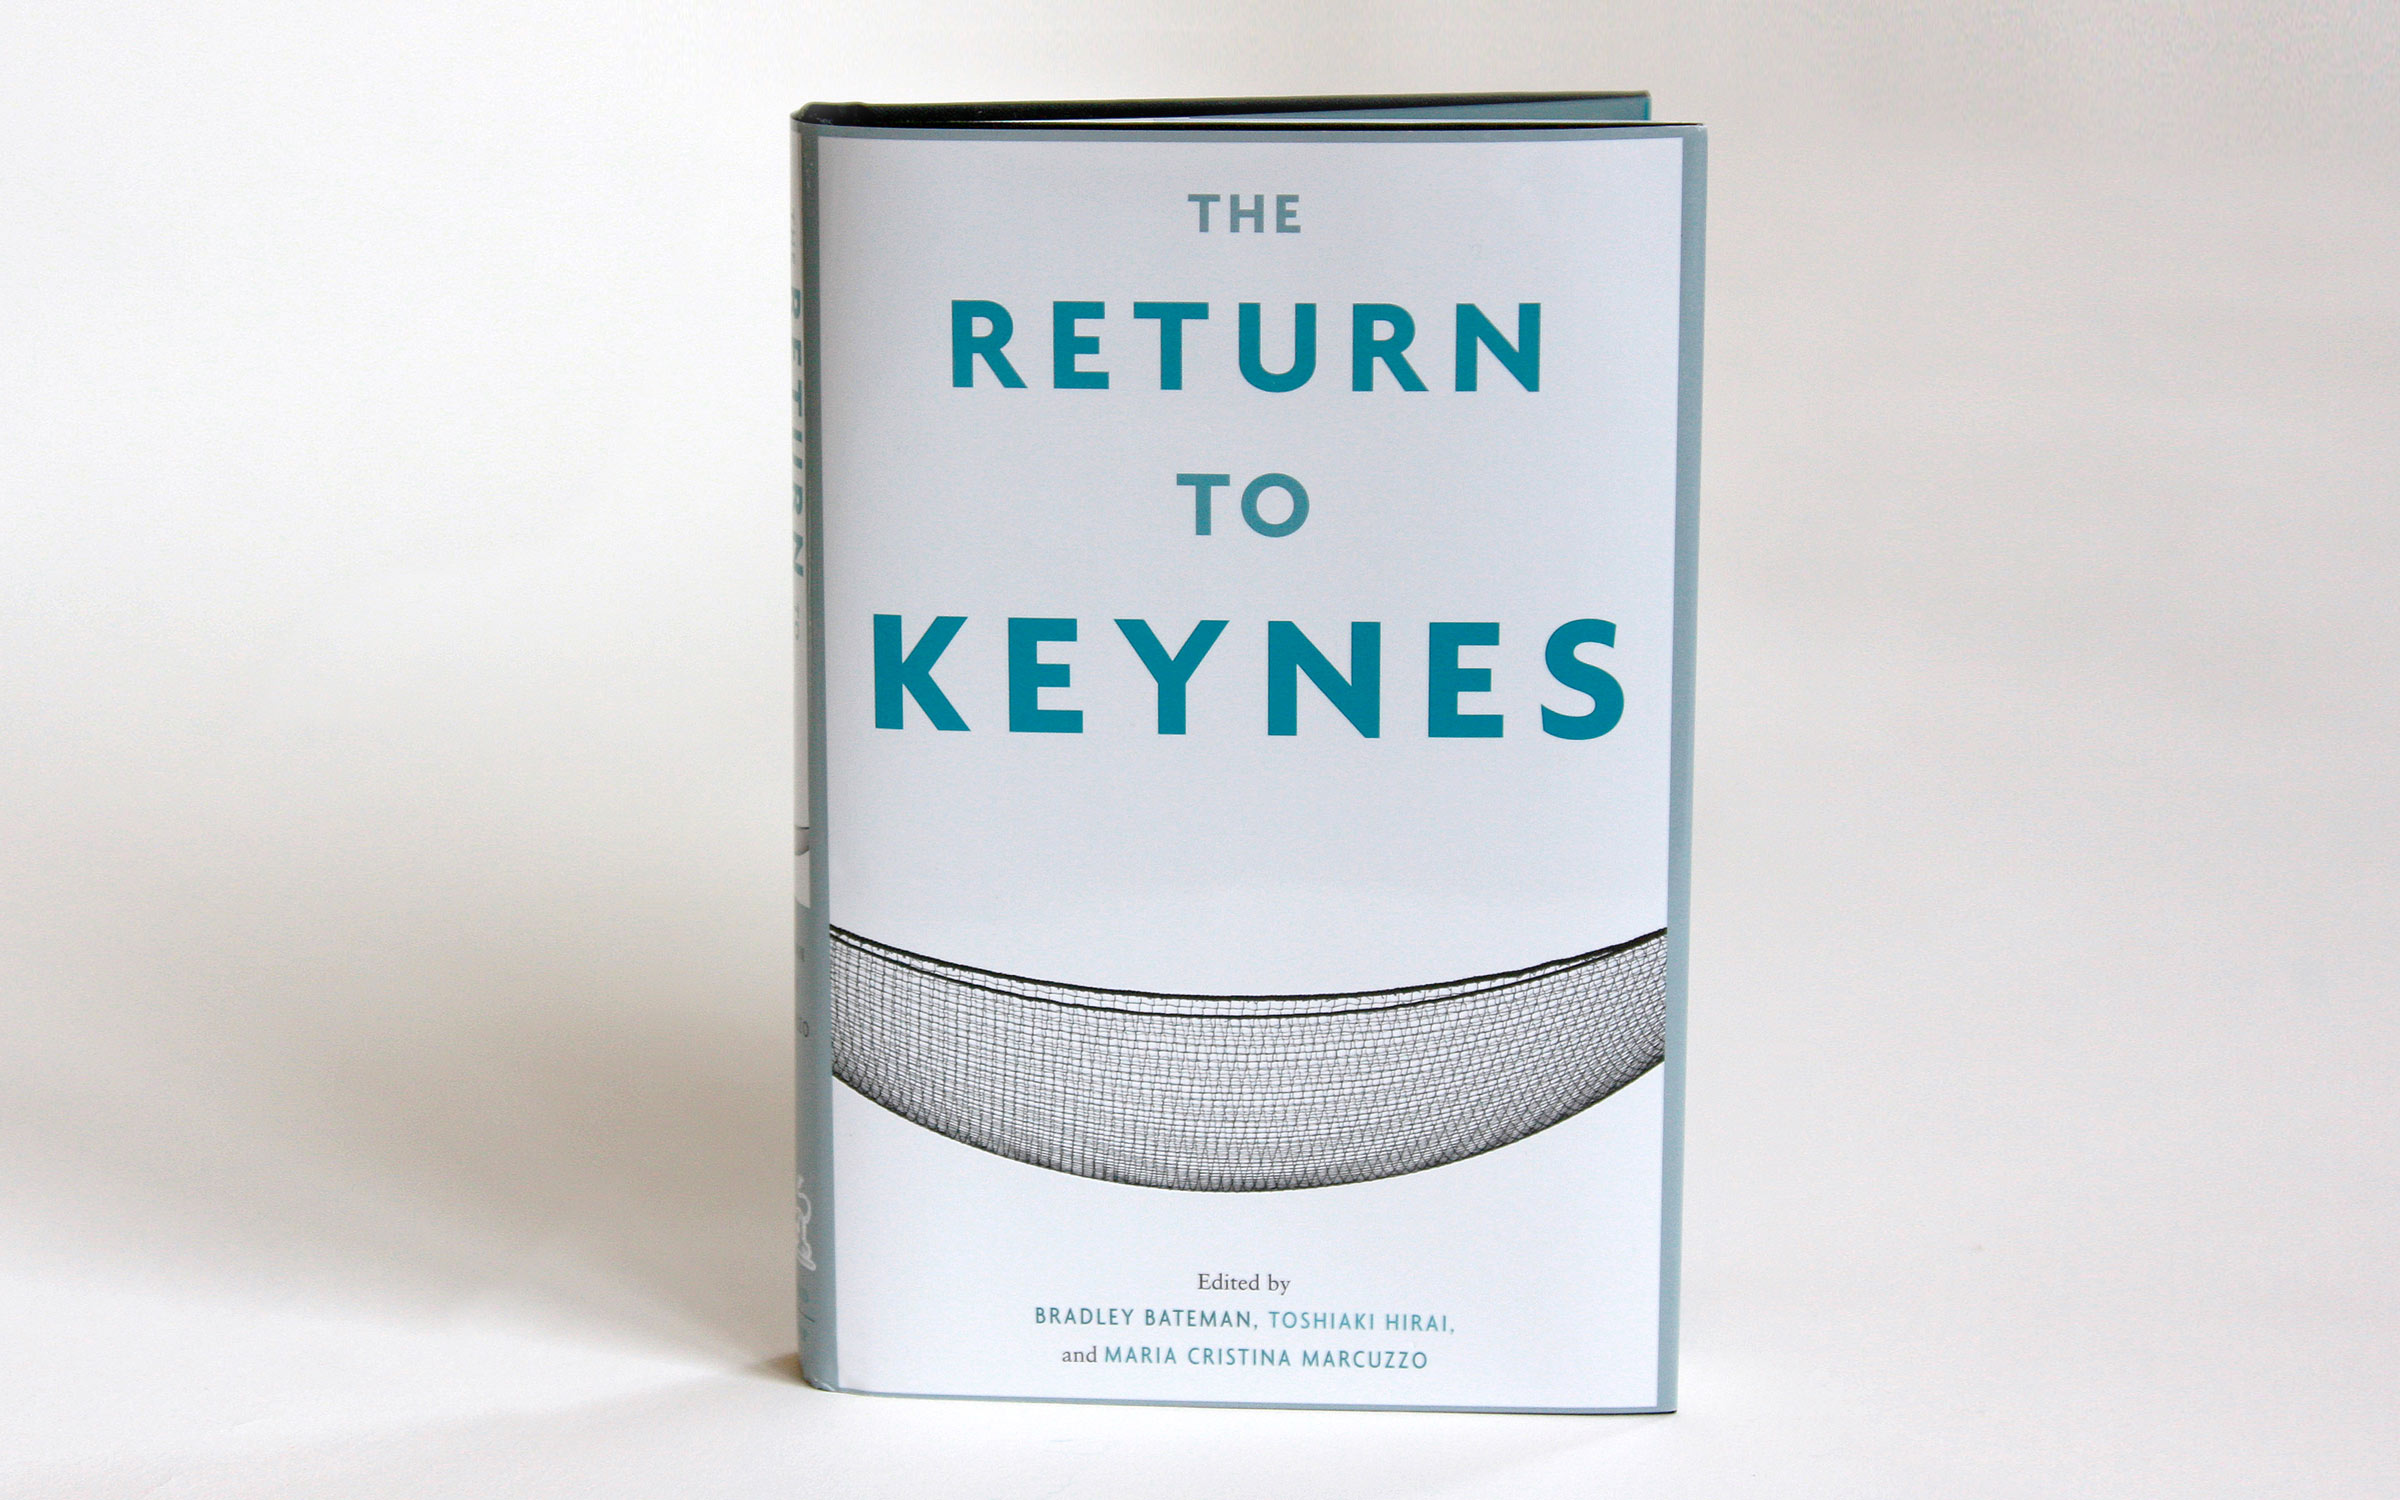 Bateman's latest book (Harvard University Press, 2010) argues that Keynes is back in vogue among politicians and economists—whether we like it or not.